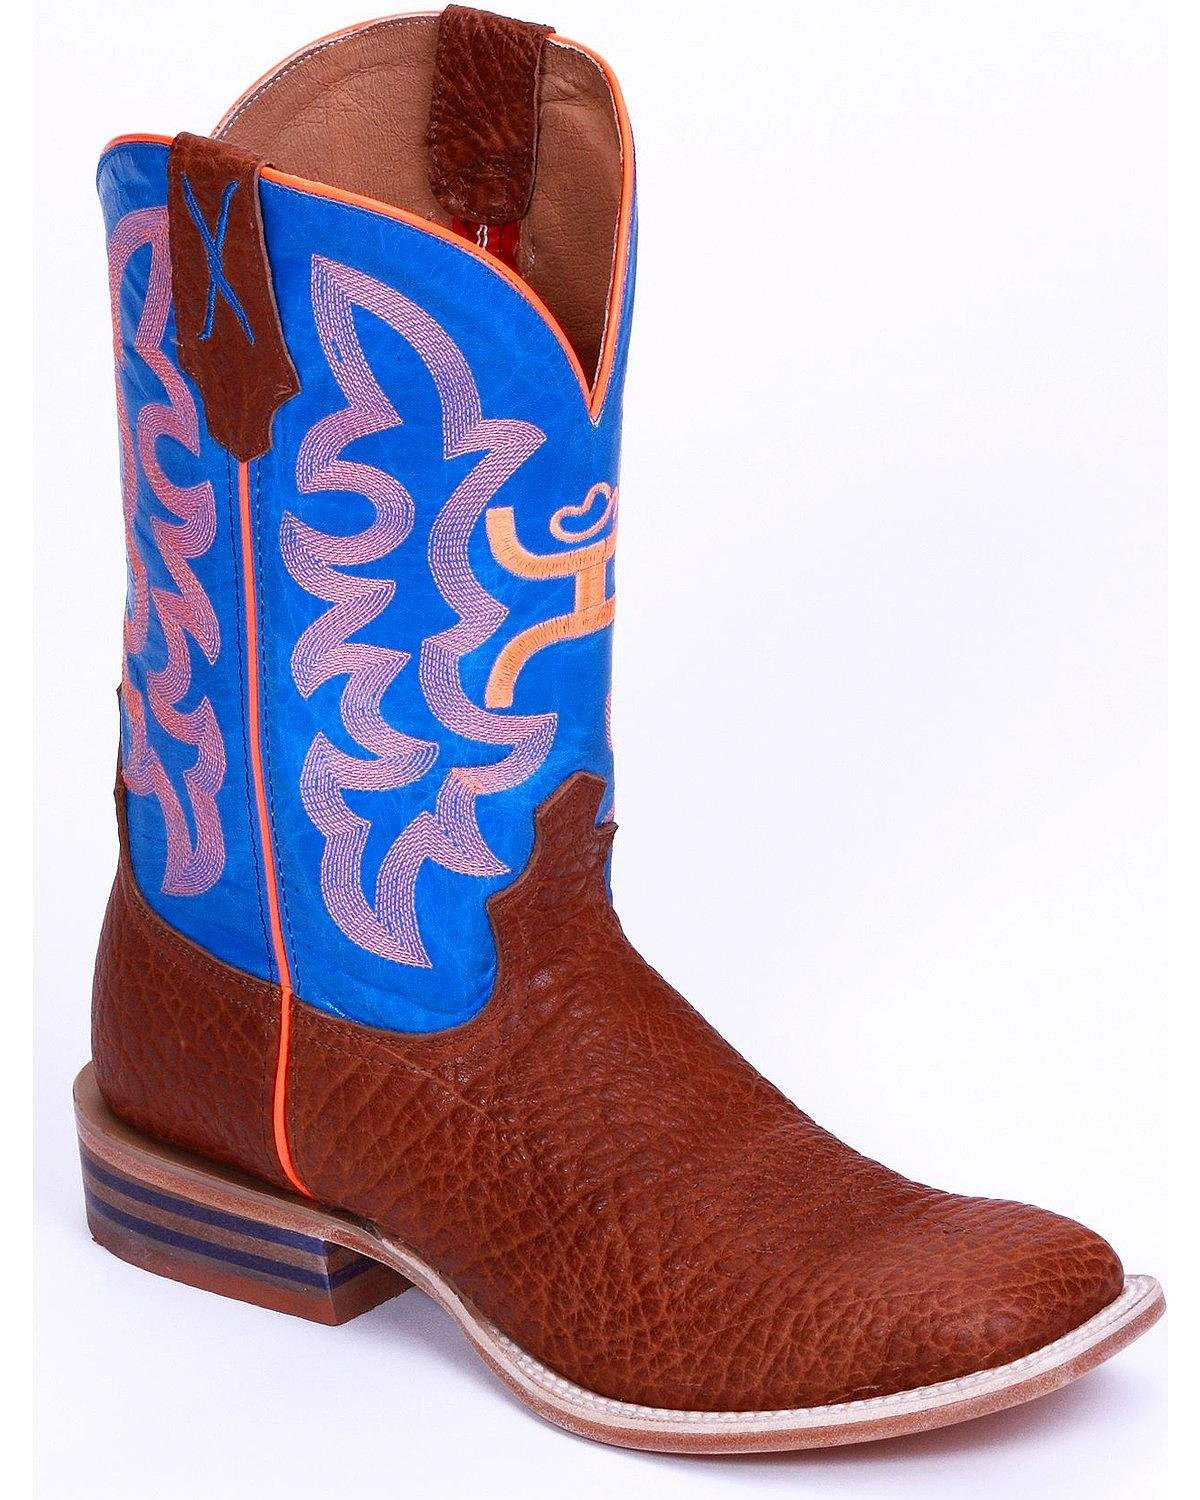 Twisted X Boys' Neon Cowboy Boot Wide Square Toe Cognac 4.5 D(M) US by Twisted X (Image #1)